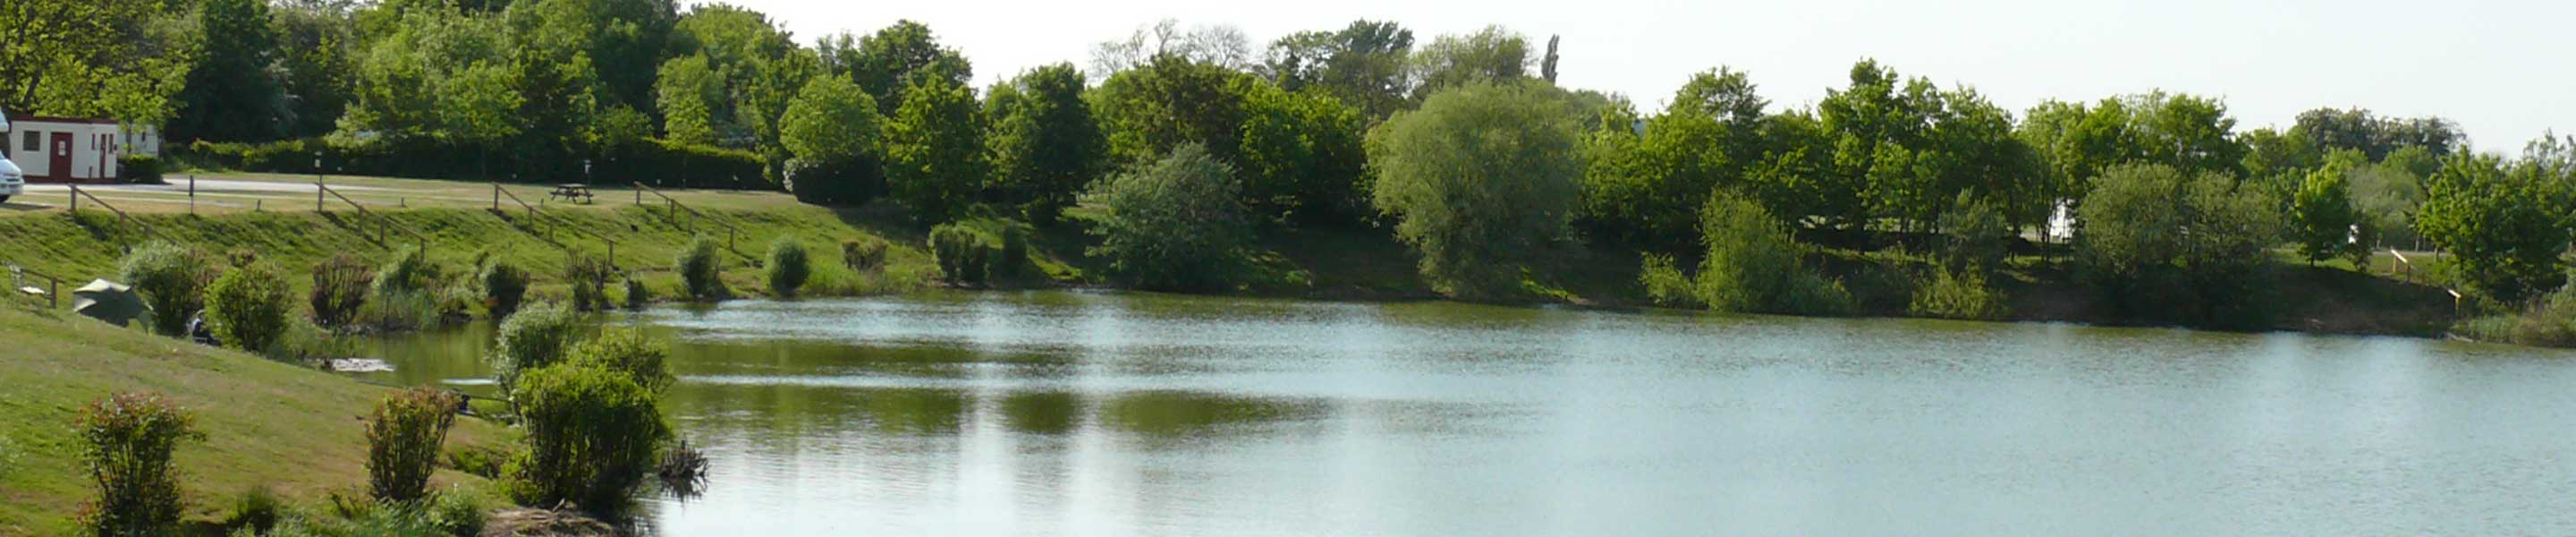 Fishing lakes in Newark, Nottinghamshire